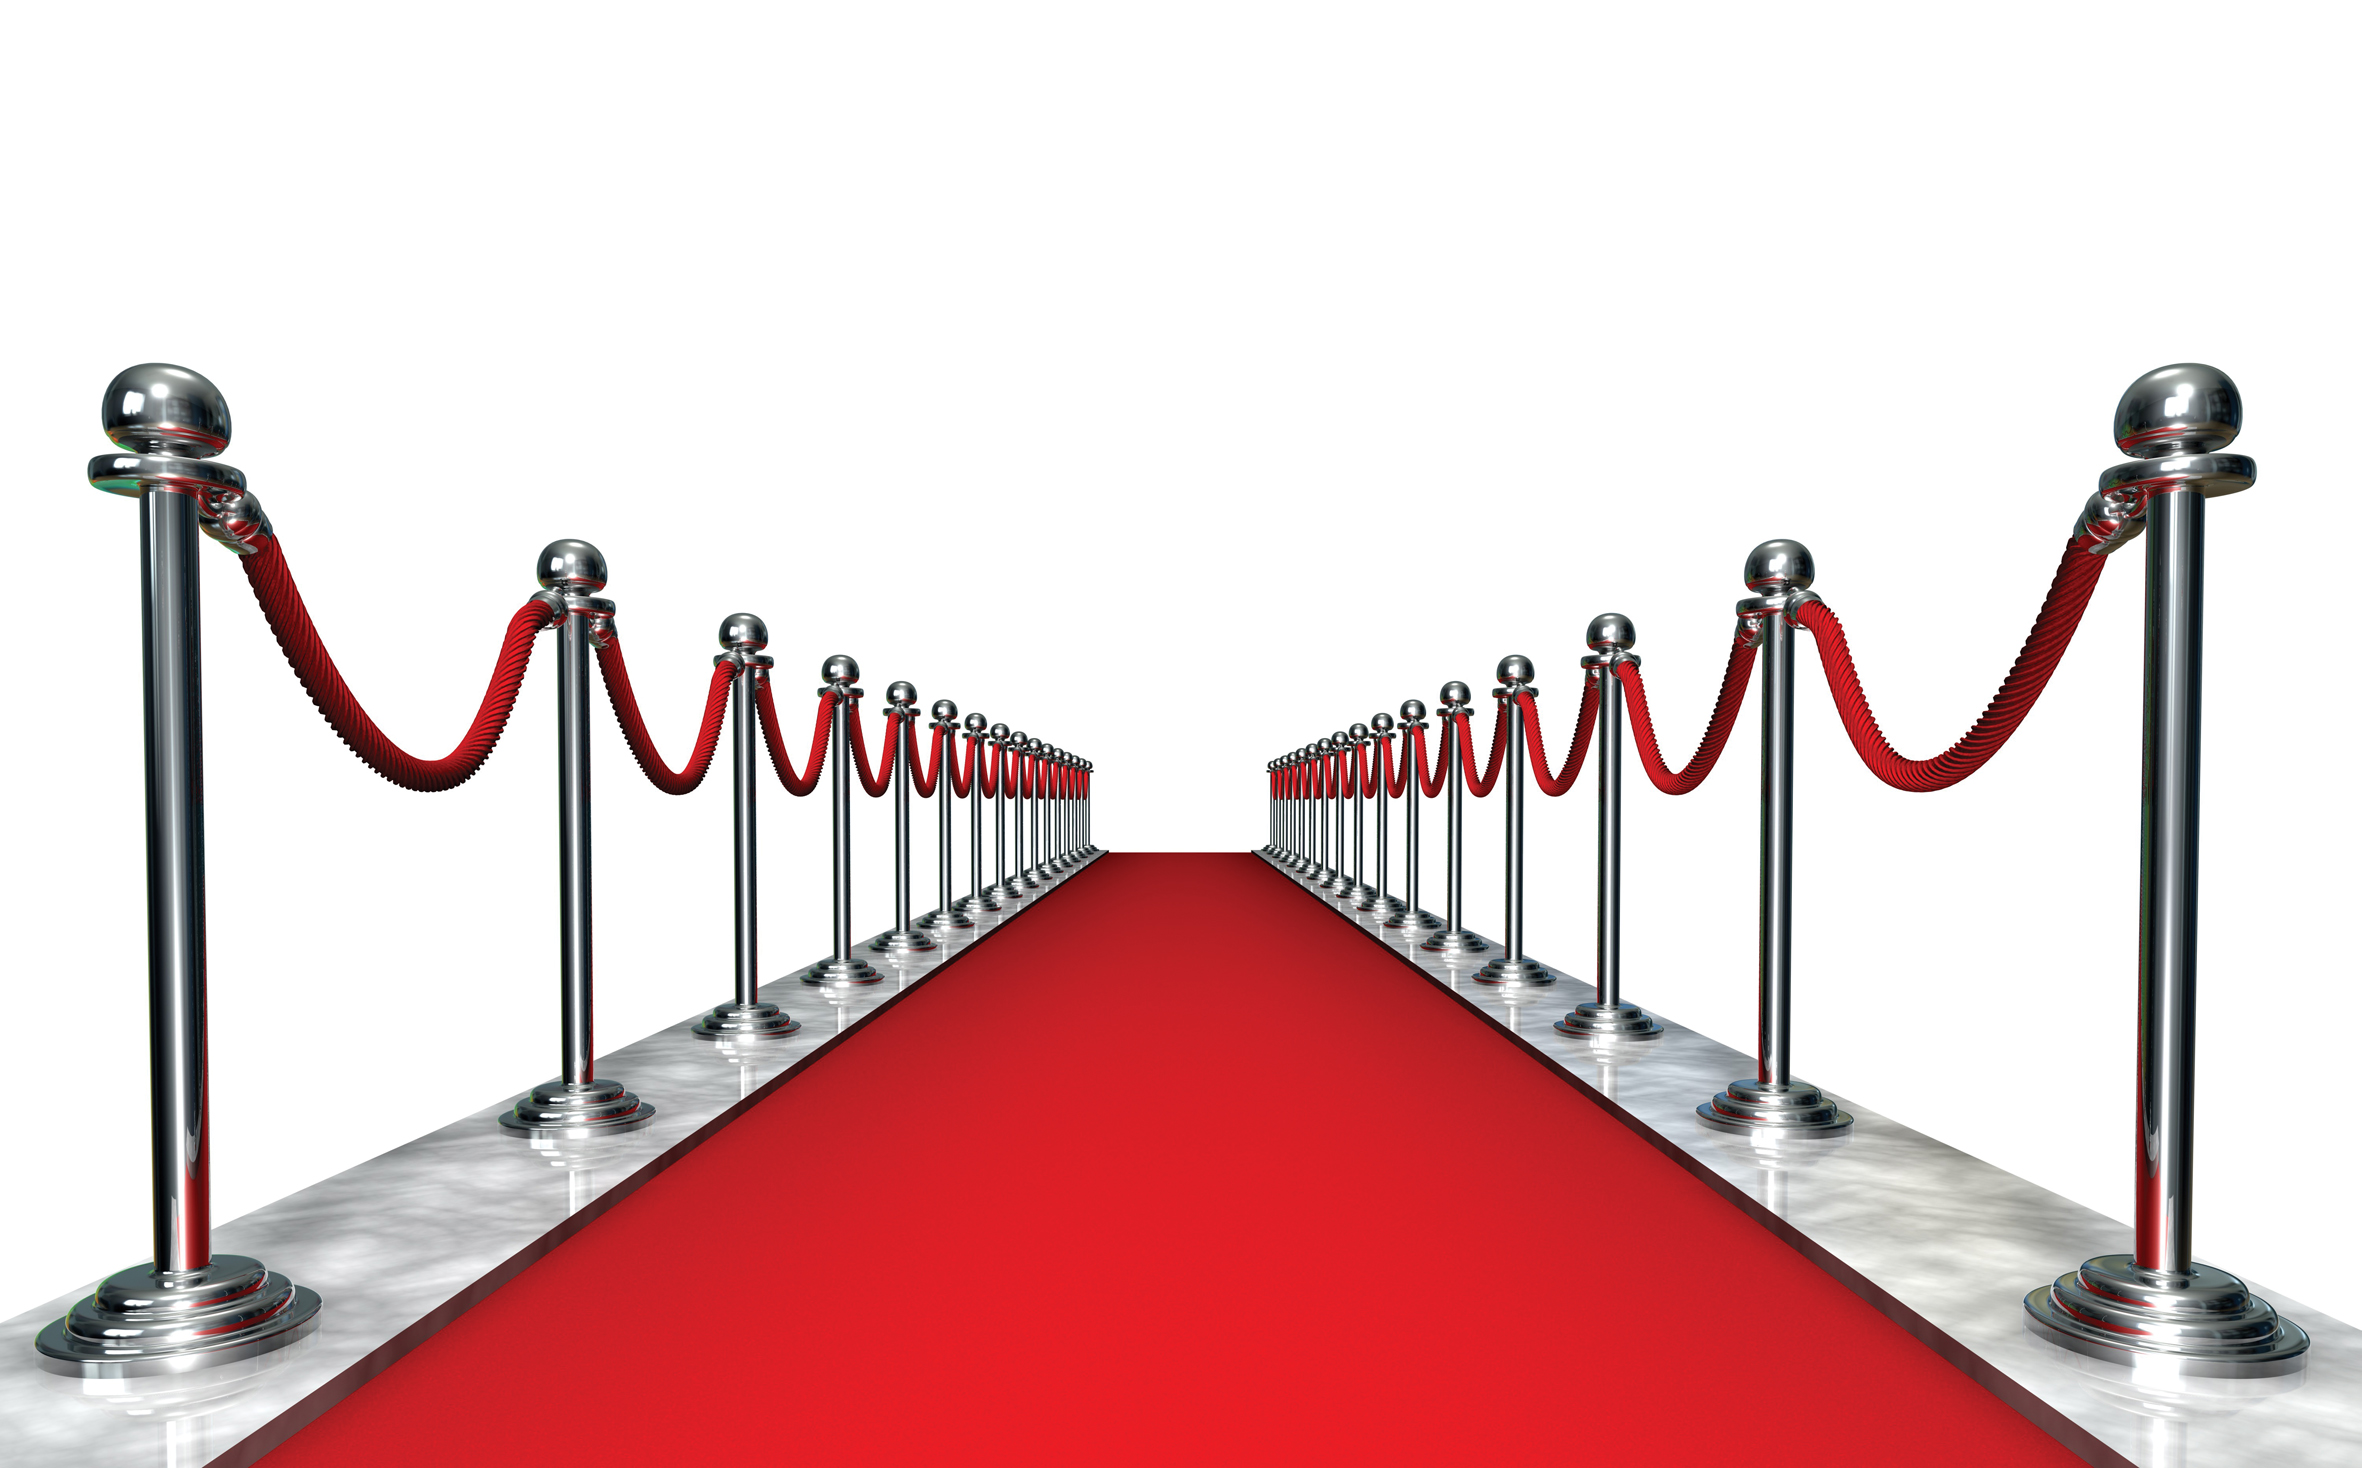 red-carpet-red-rope